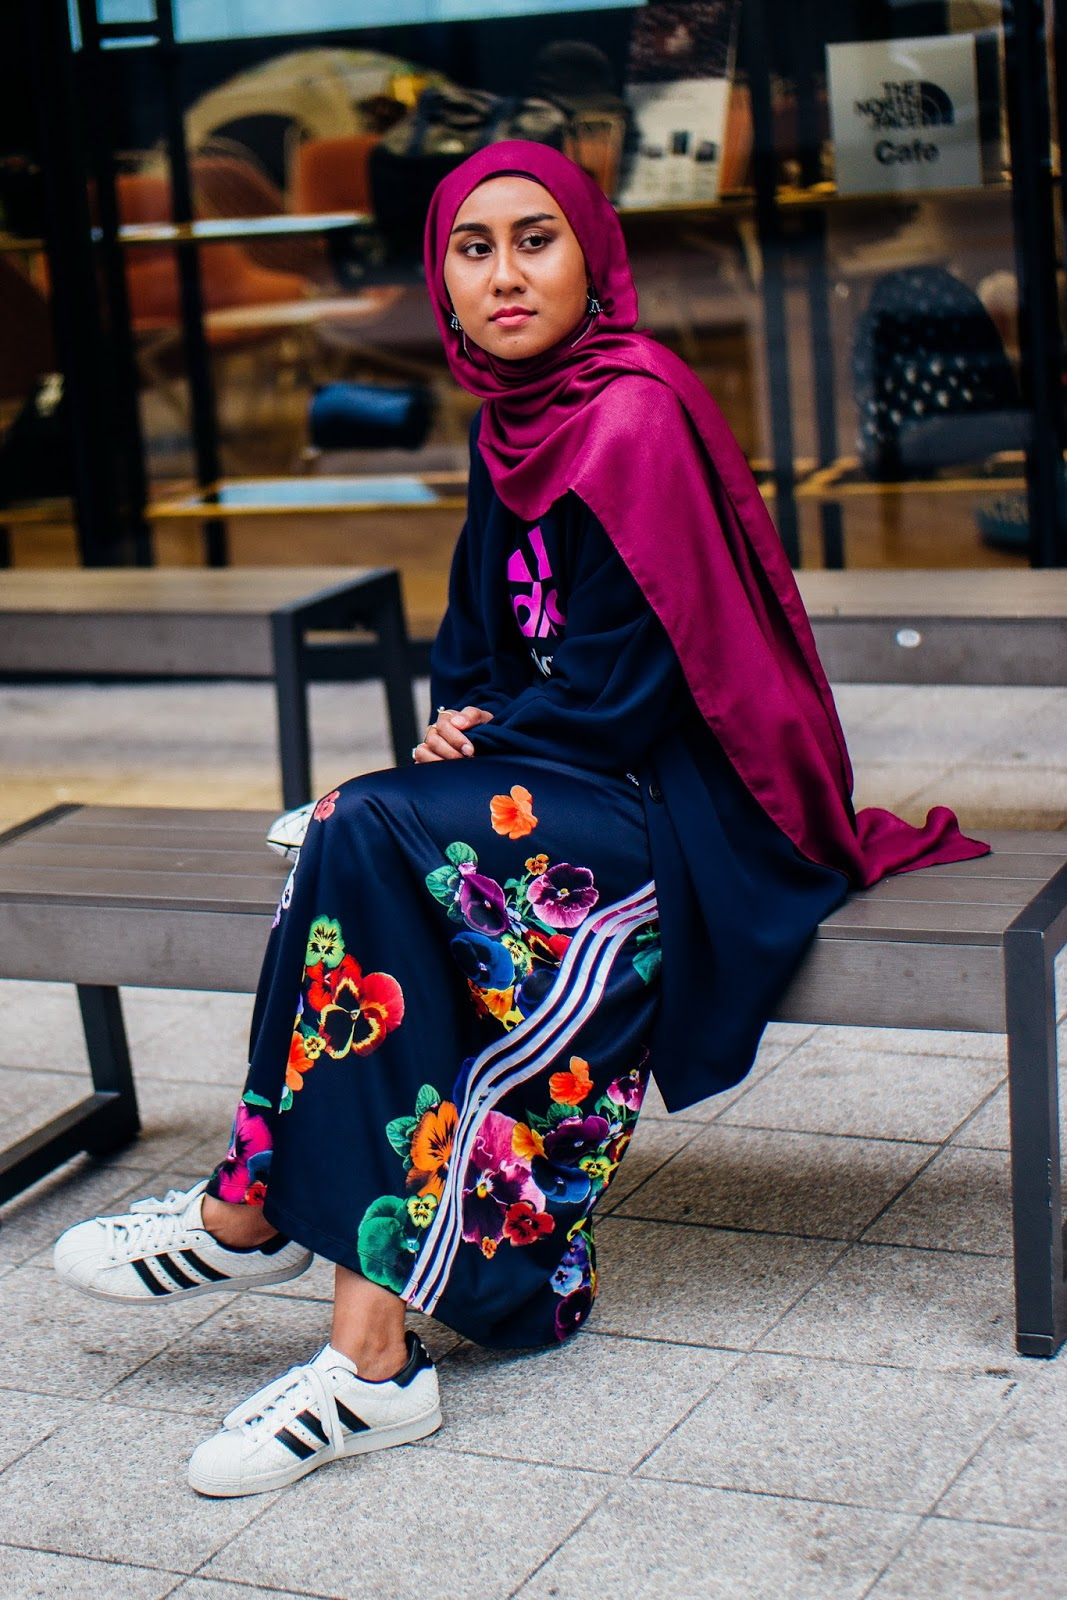 How Hijabis Can Wear Skirts Without Looking Too Girlish